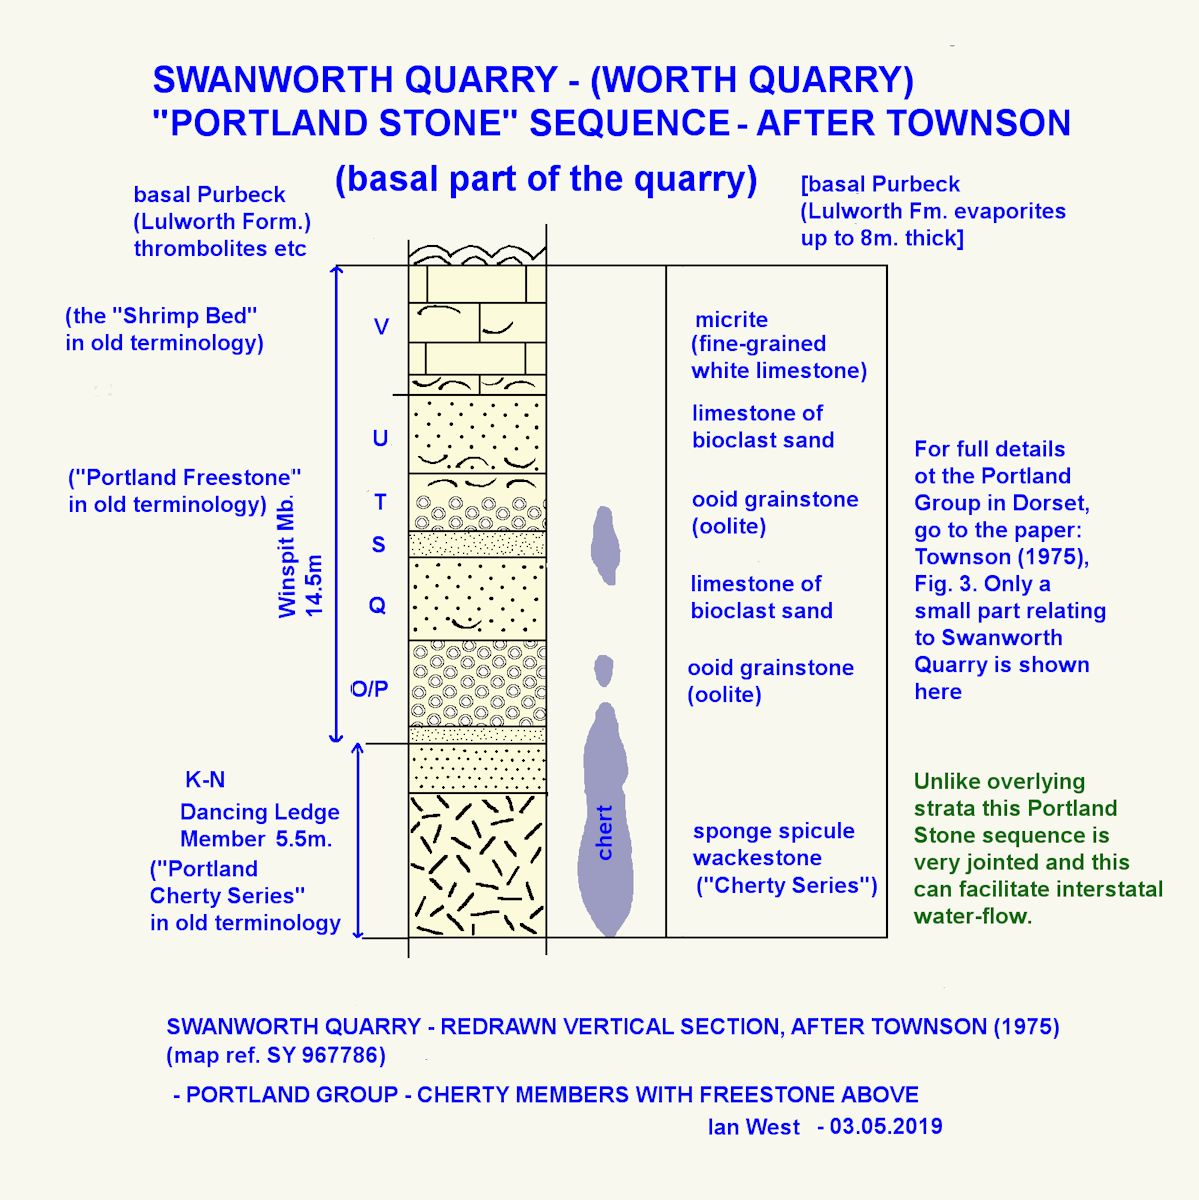 Details of the Portland Stone succession at Swanworth Quarry, redrawn but based on Townson, 1975